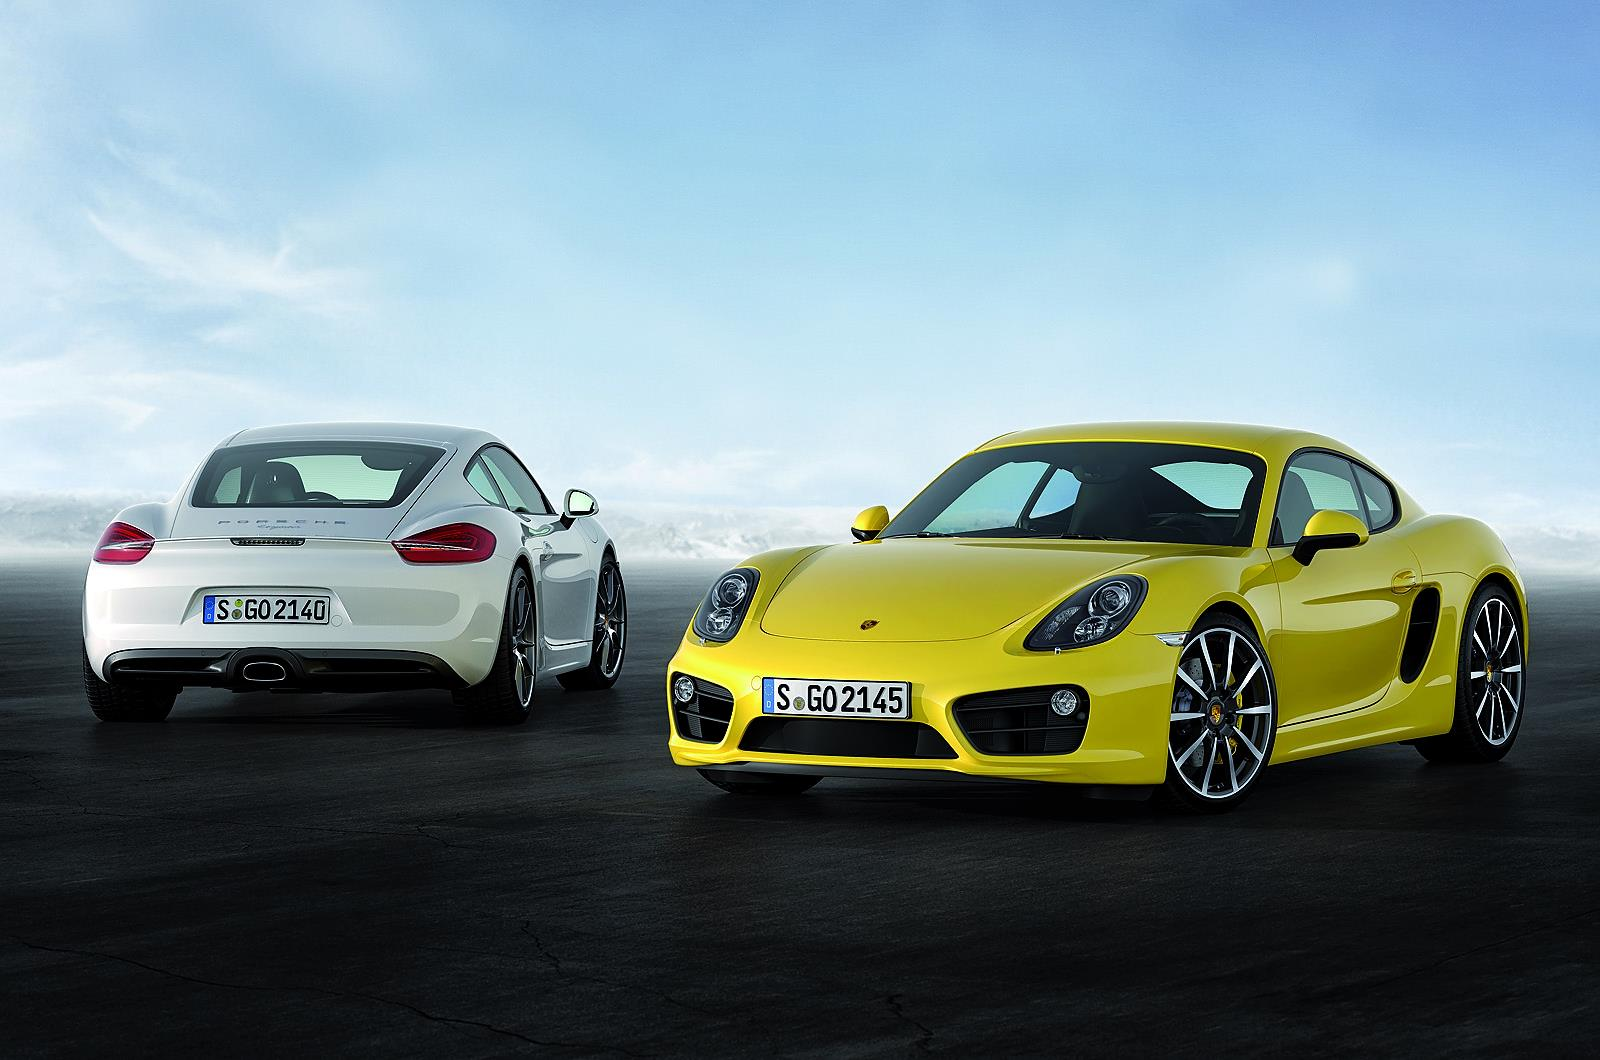 New Porsche Cayman unveiled